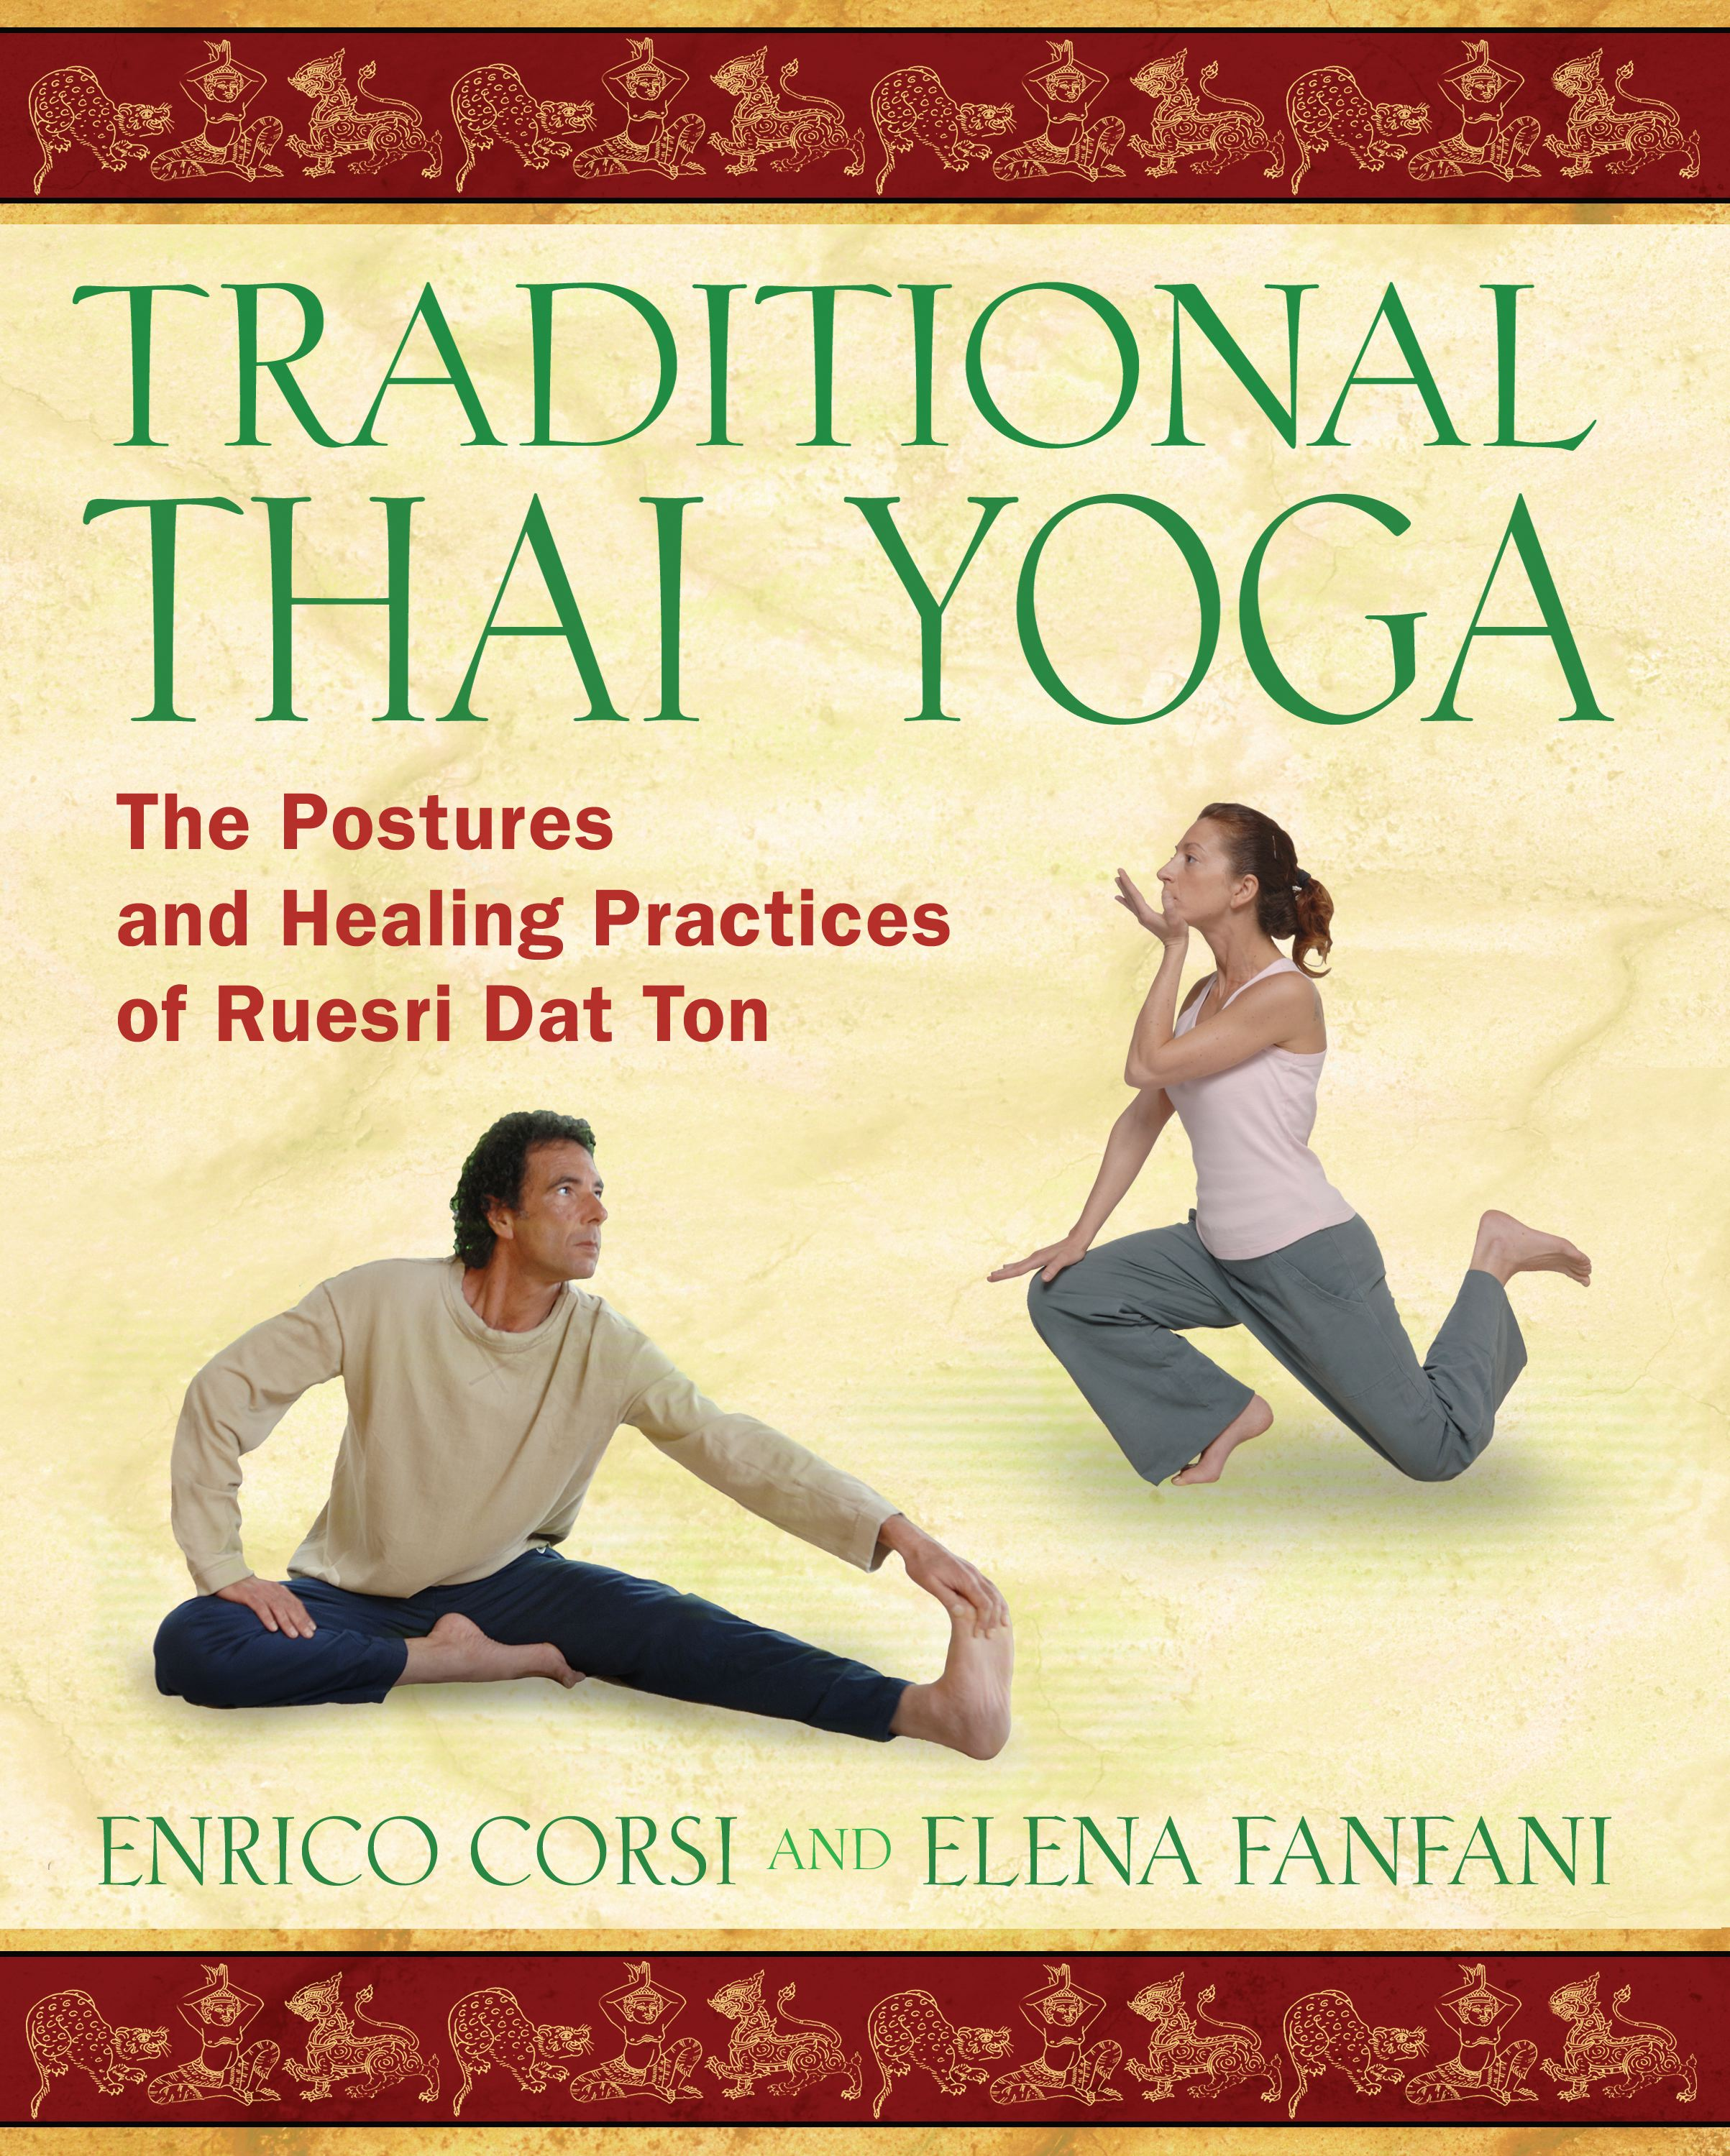 Traditional-thai-yoga-9781594772054_hr